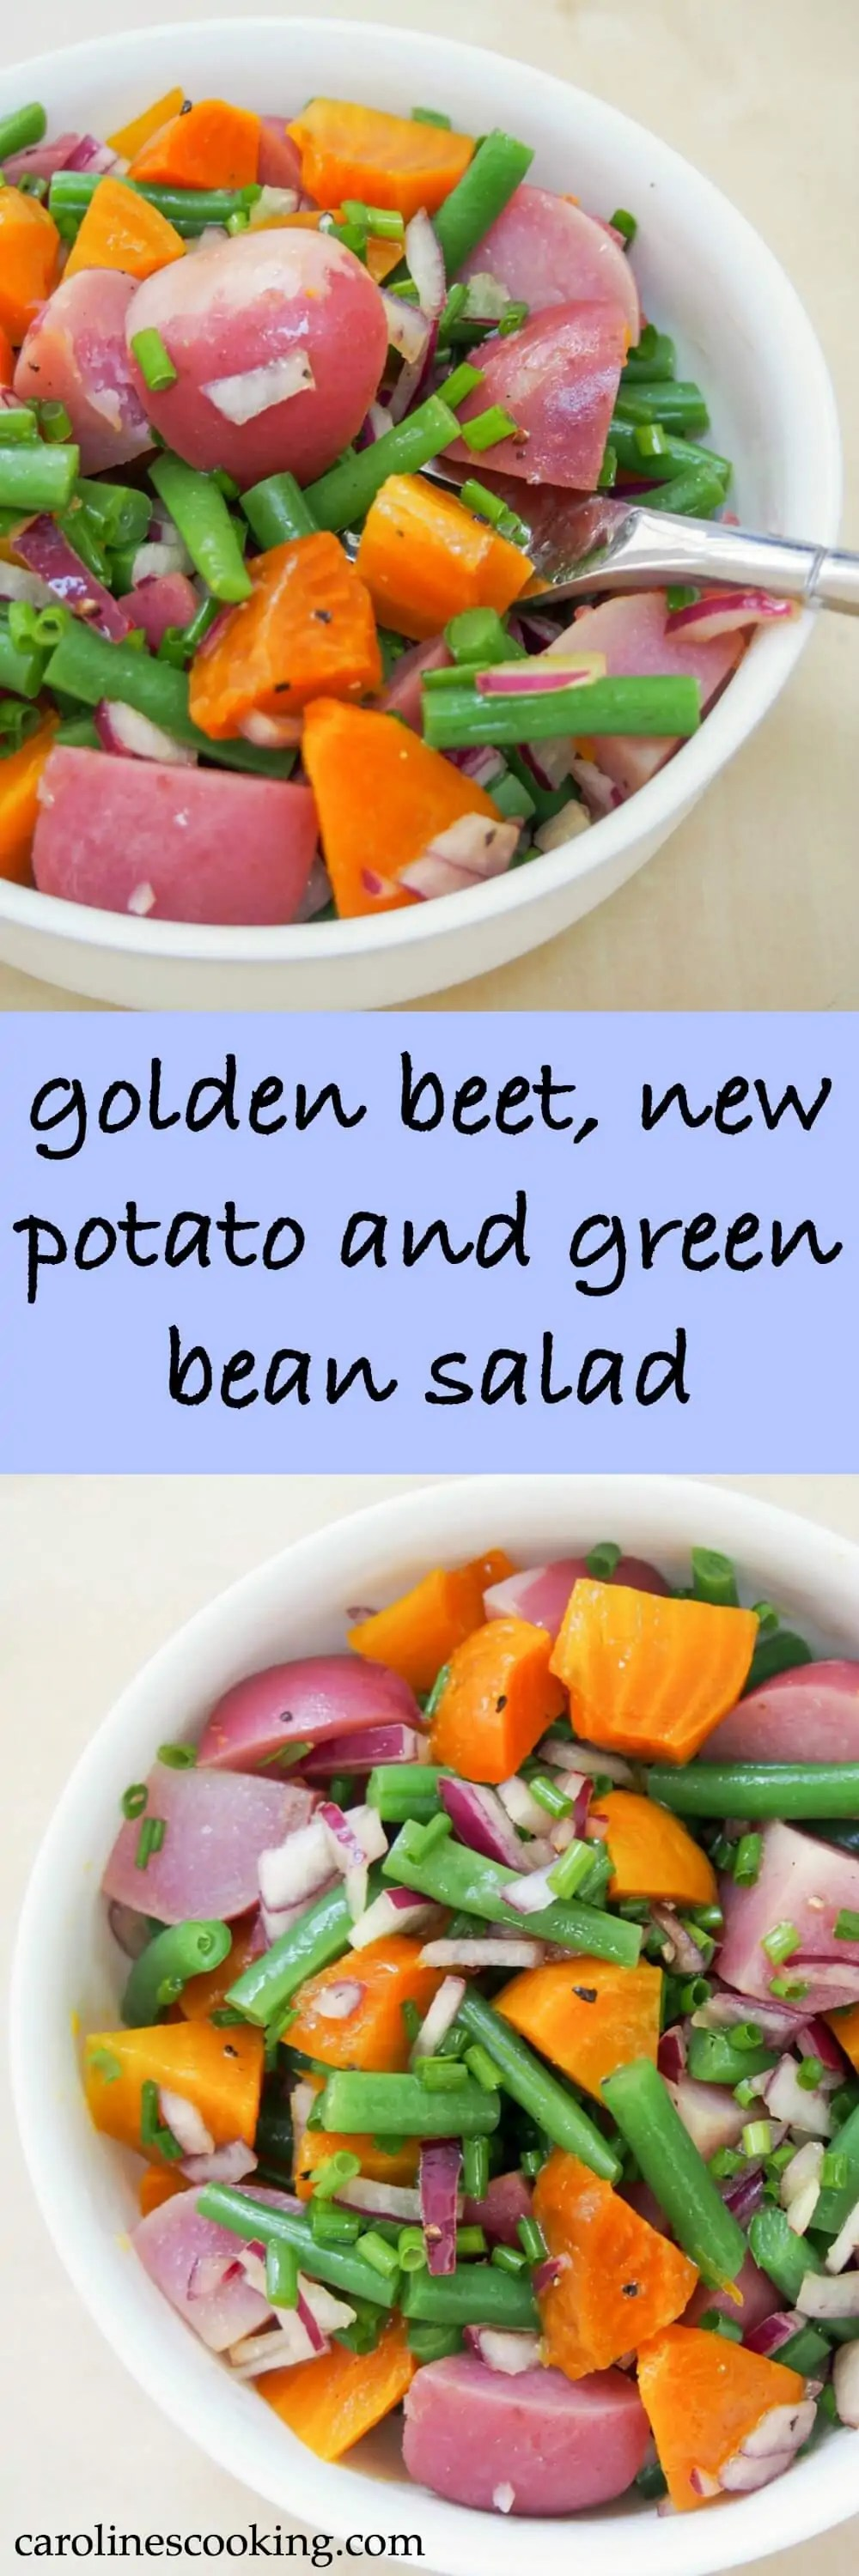 This golden beet, potato and green bean salad makes an easy and delicious side or lunch. Simple flavors, allowing the ingredients to shine, it's also perfect for your picnics and lunchboxes.